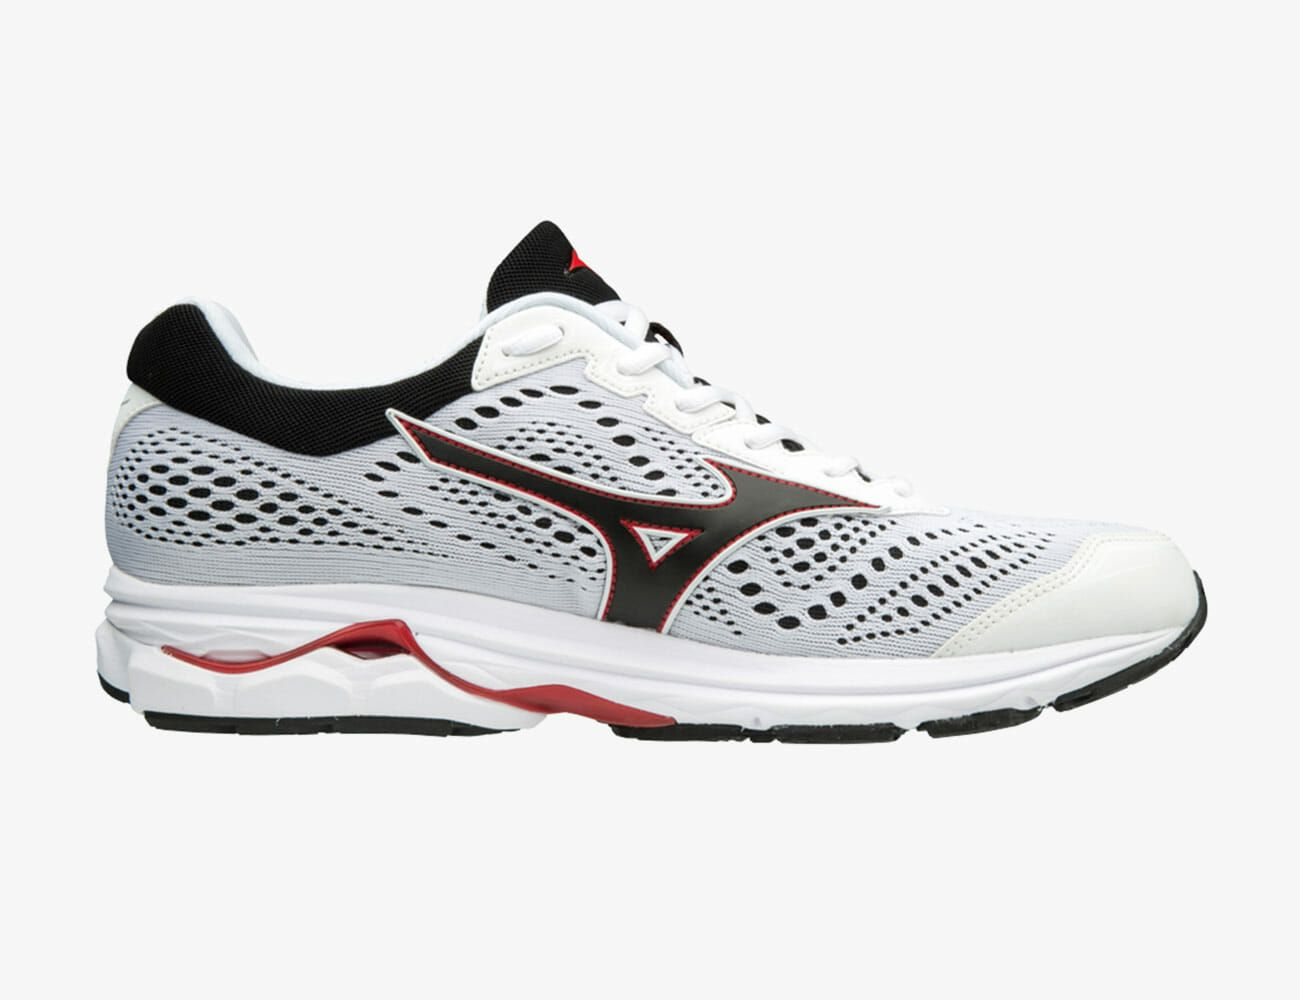 mizuno womens running shoes size 8.5 in europe germany price